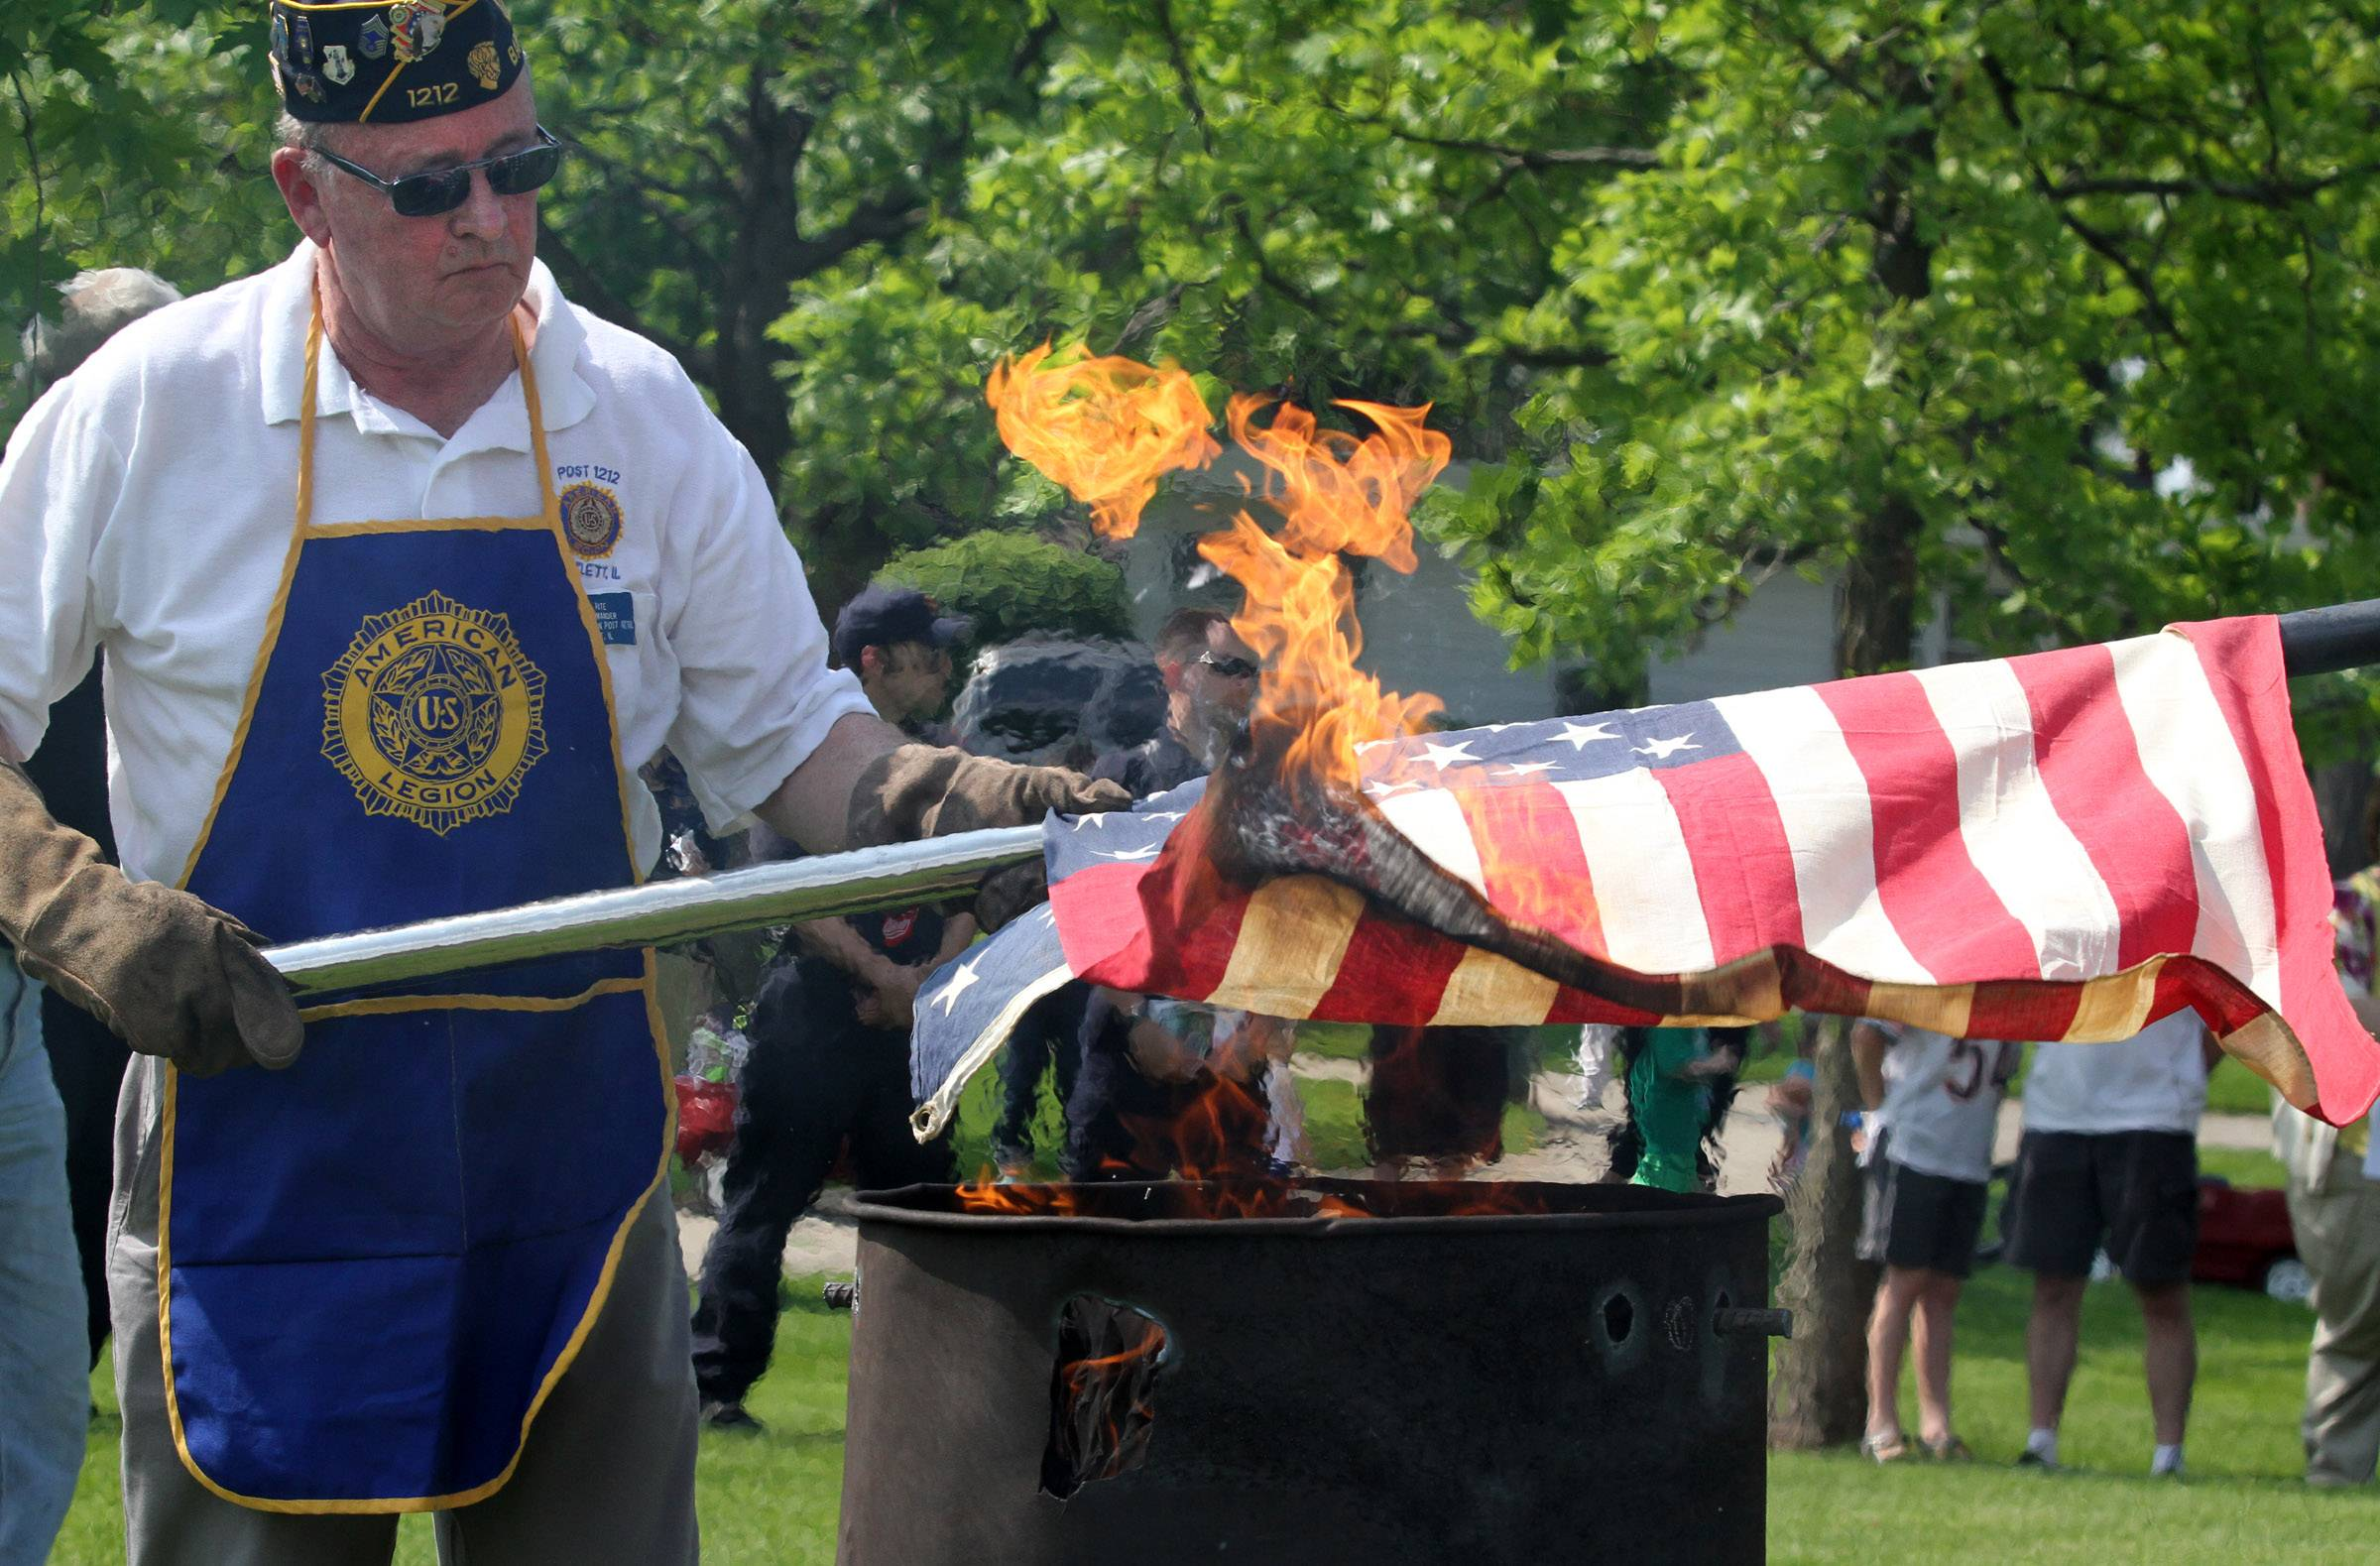 Brian Pate of Bartlett with American Legion Post 1212 lowers an old, worn American flag into a barrel of flames during a flag retirement ceremony held by Bartlett VFW Post 11018 at Bartlett Park on Memorial Day. Thirteen flags were retired in honor of the first 13 colonies.